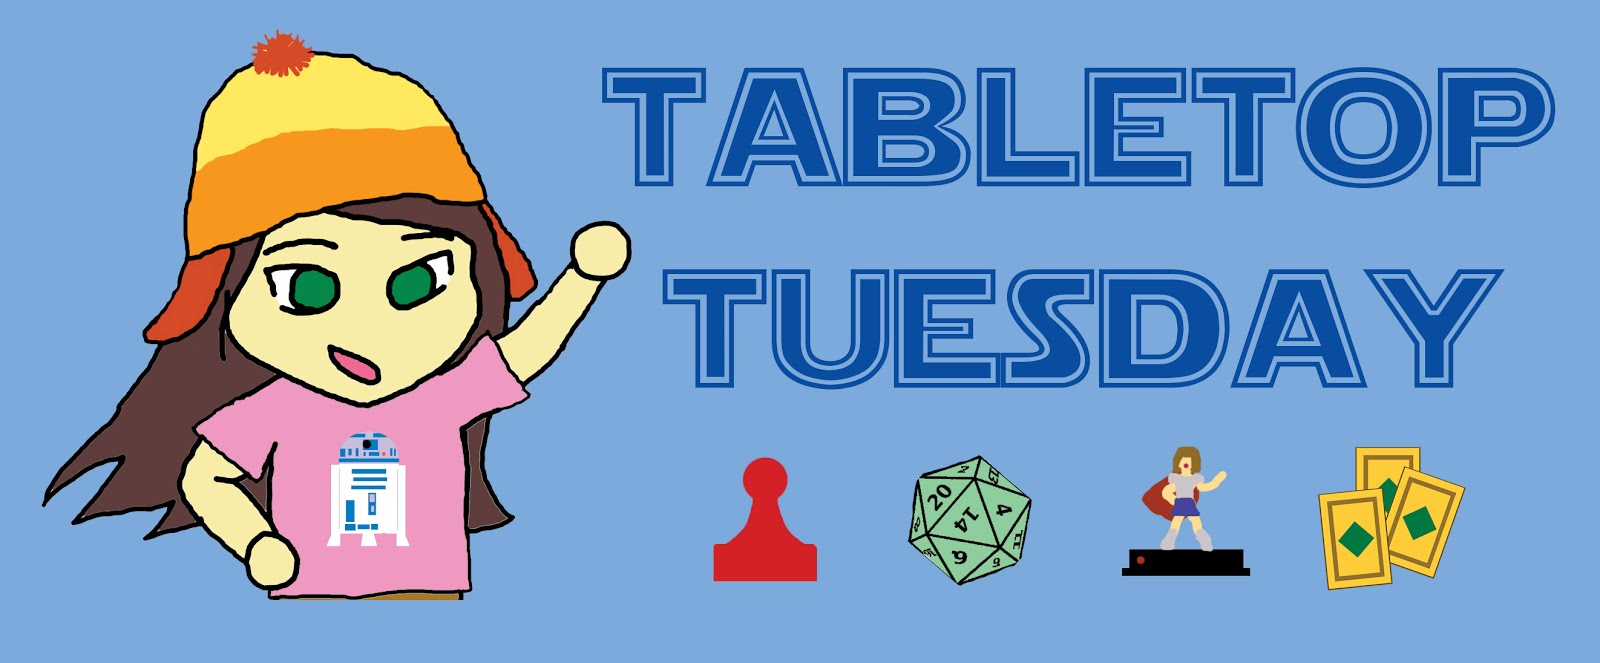 Tabletop Tuesday!